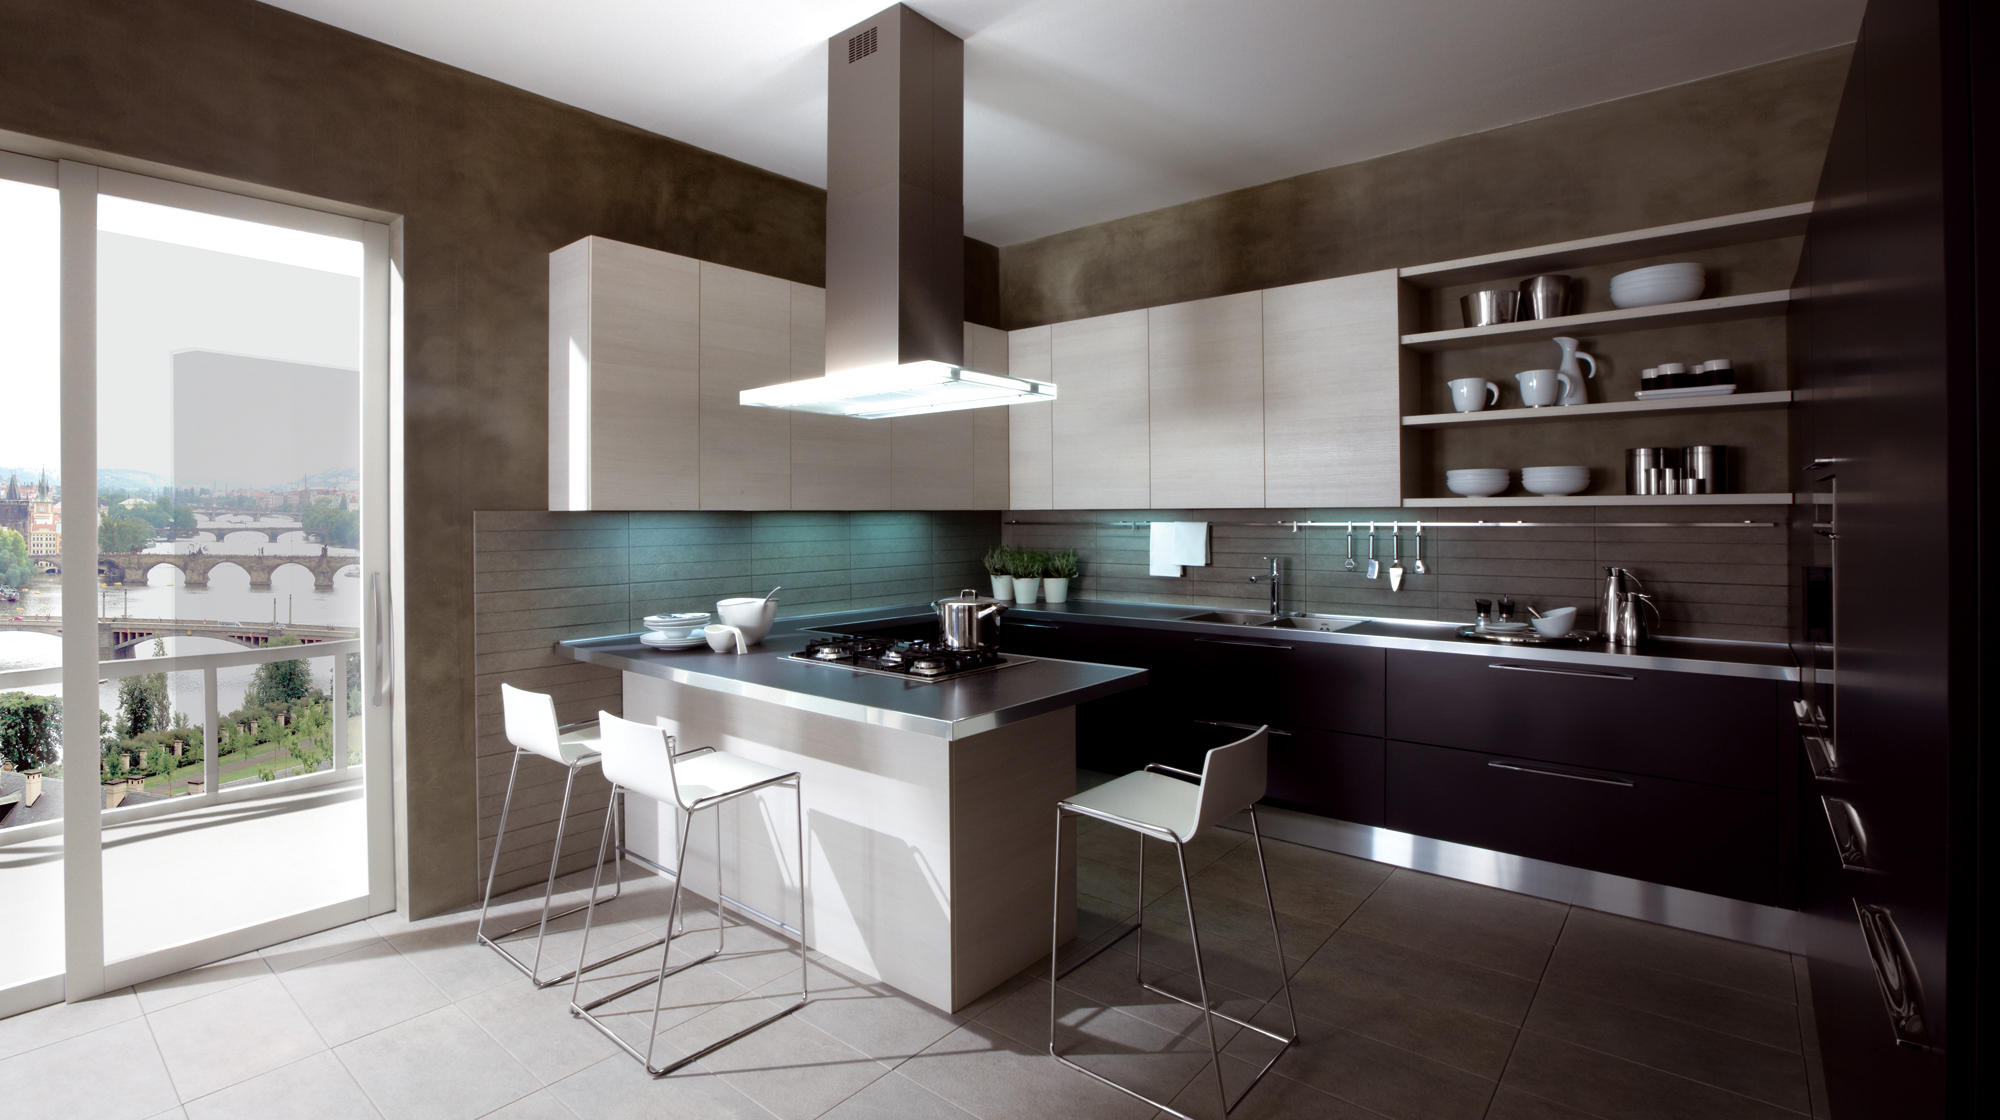 ethica decorativo island kitchens from veneta cucine architonic. Black Bedroom Furniture Sets. Home Design Ideas